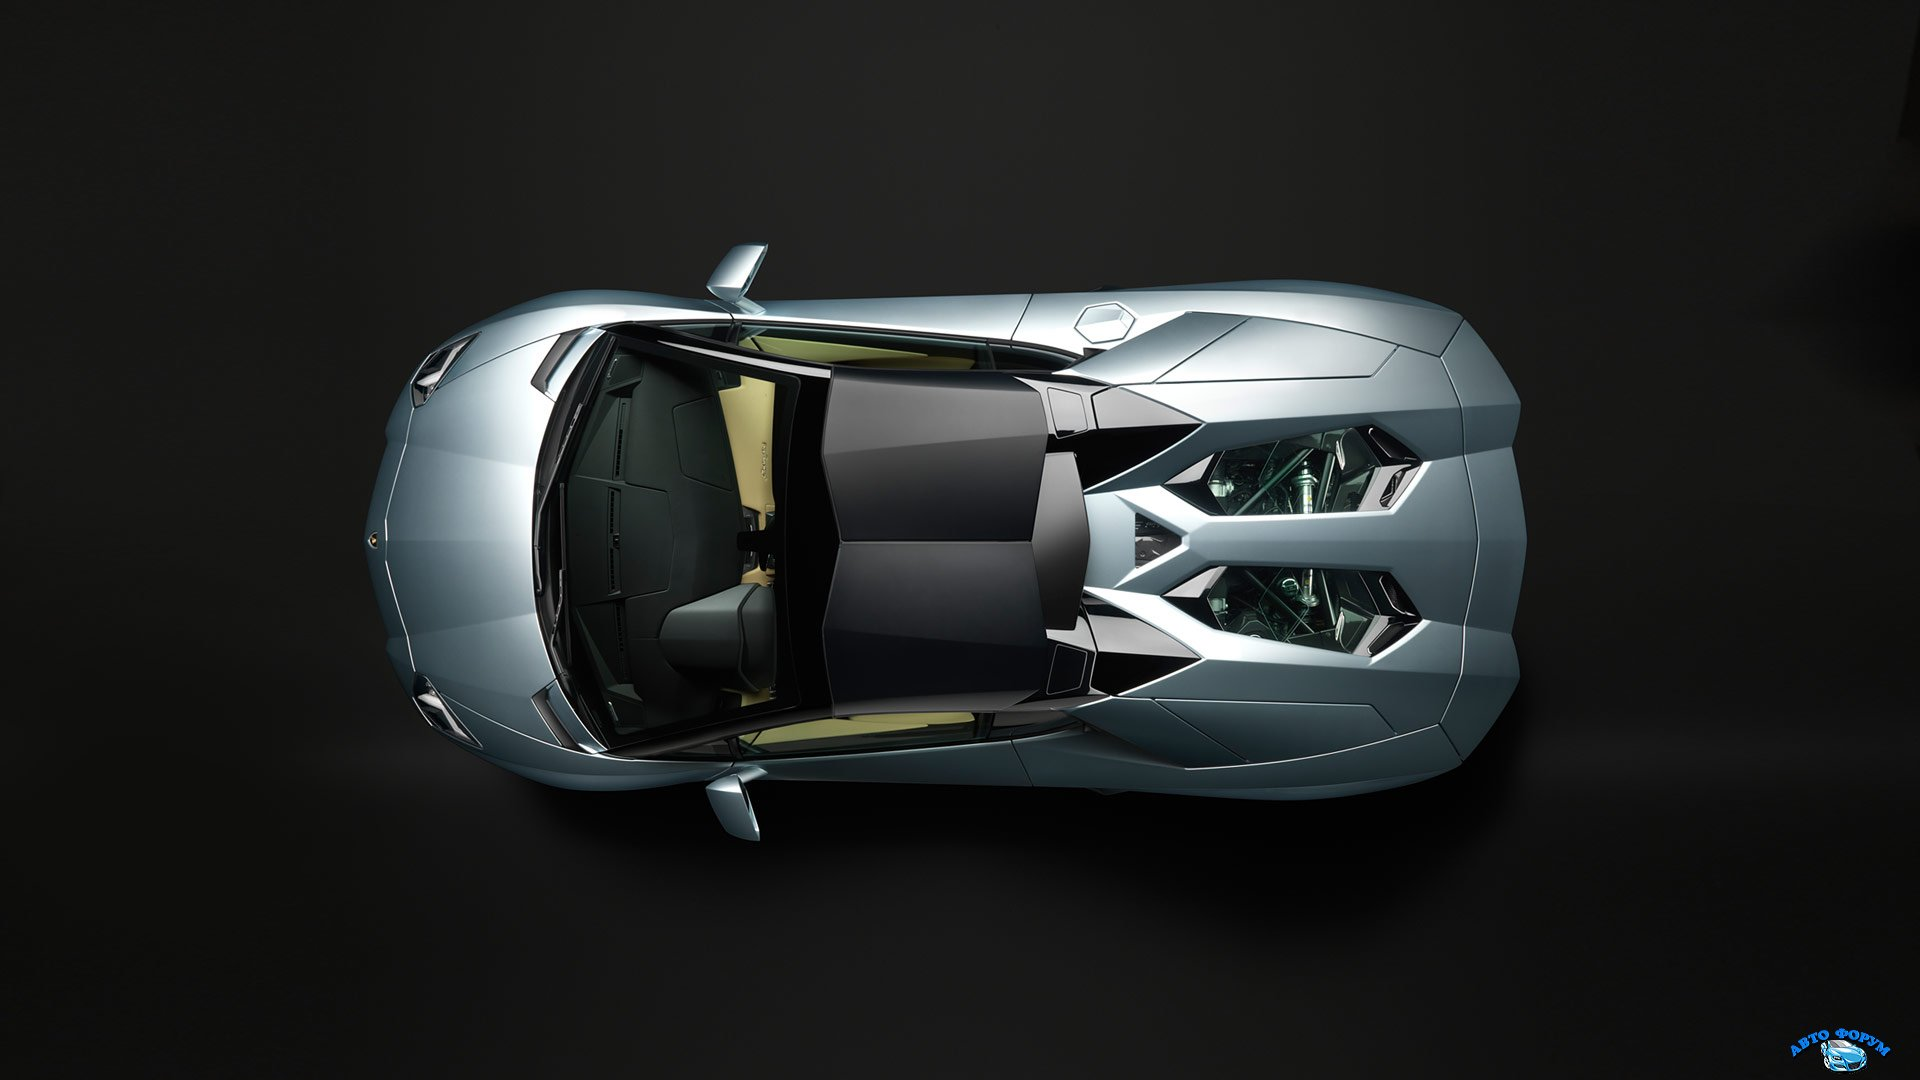 lamborghini_aventador_lp_700-4_roadster_with_roof_top_view_31.jpg